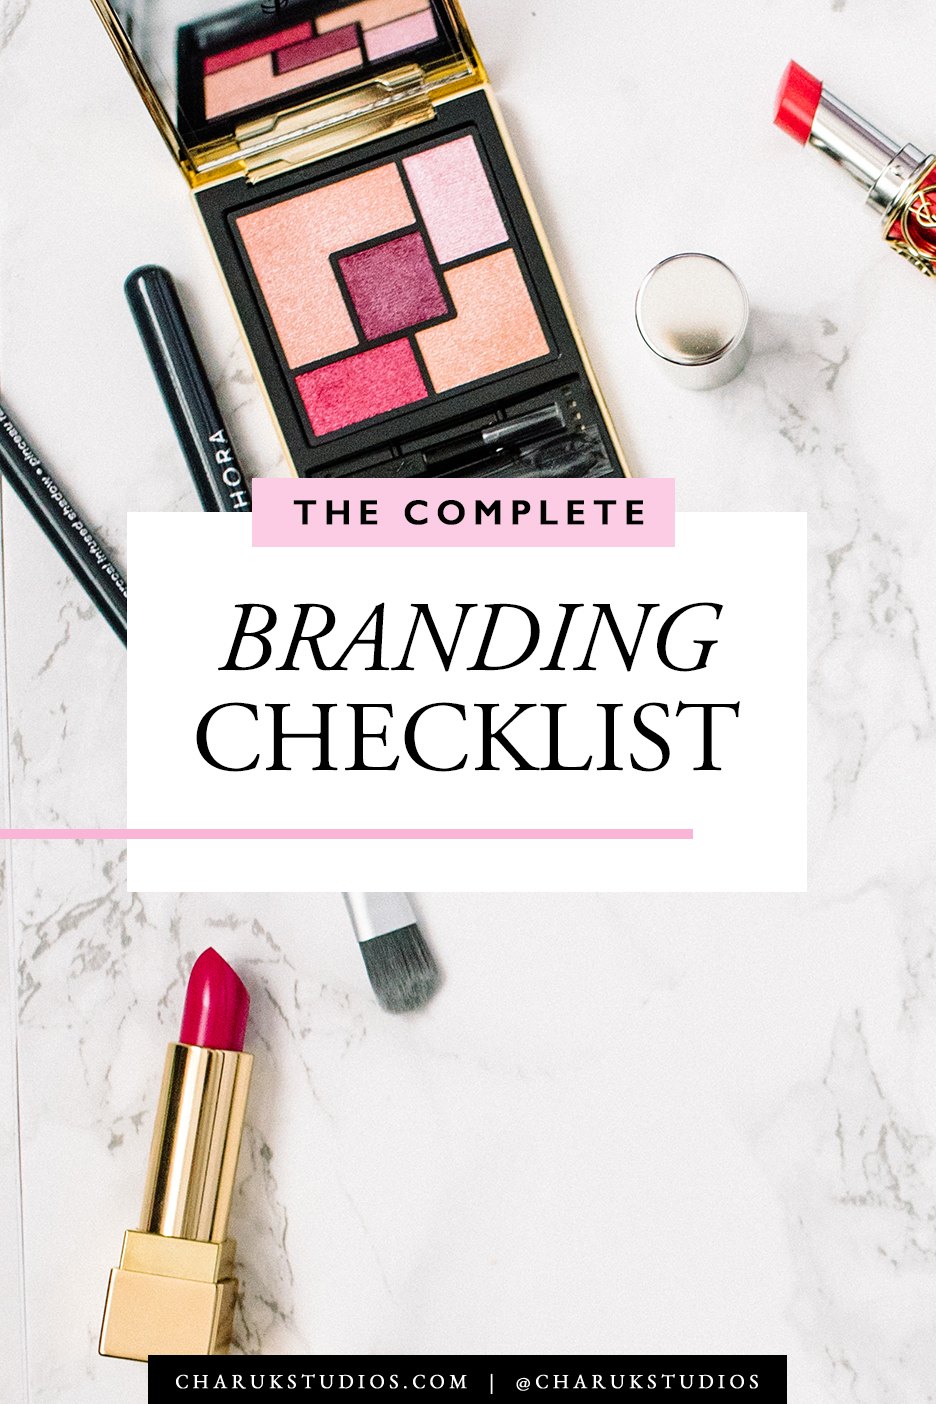 The complete branding checklist by Charuk Studios